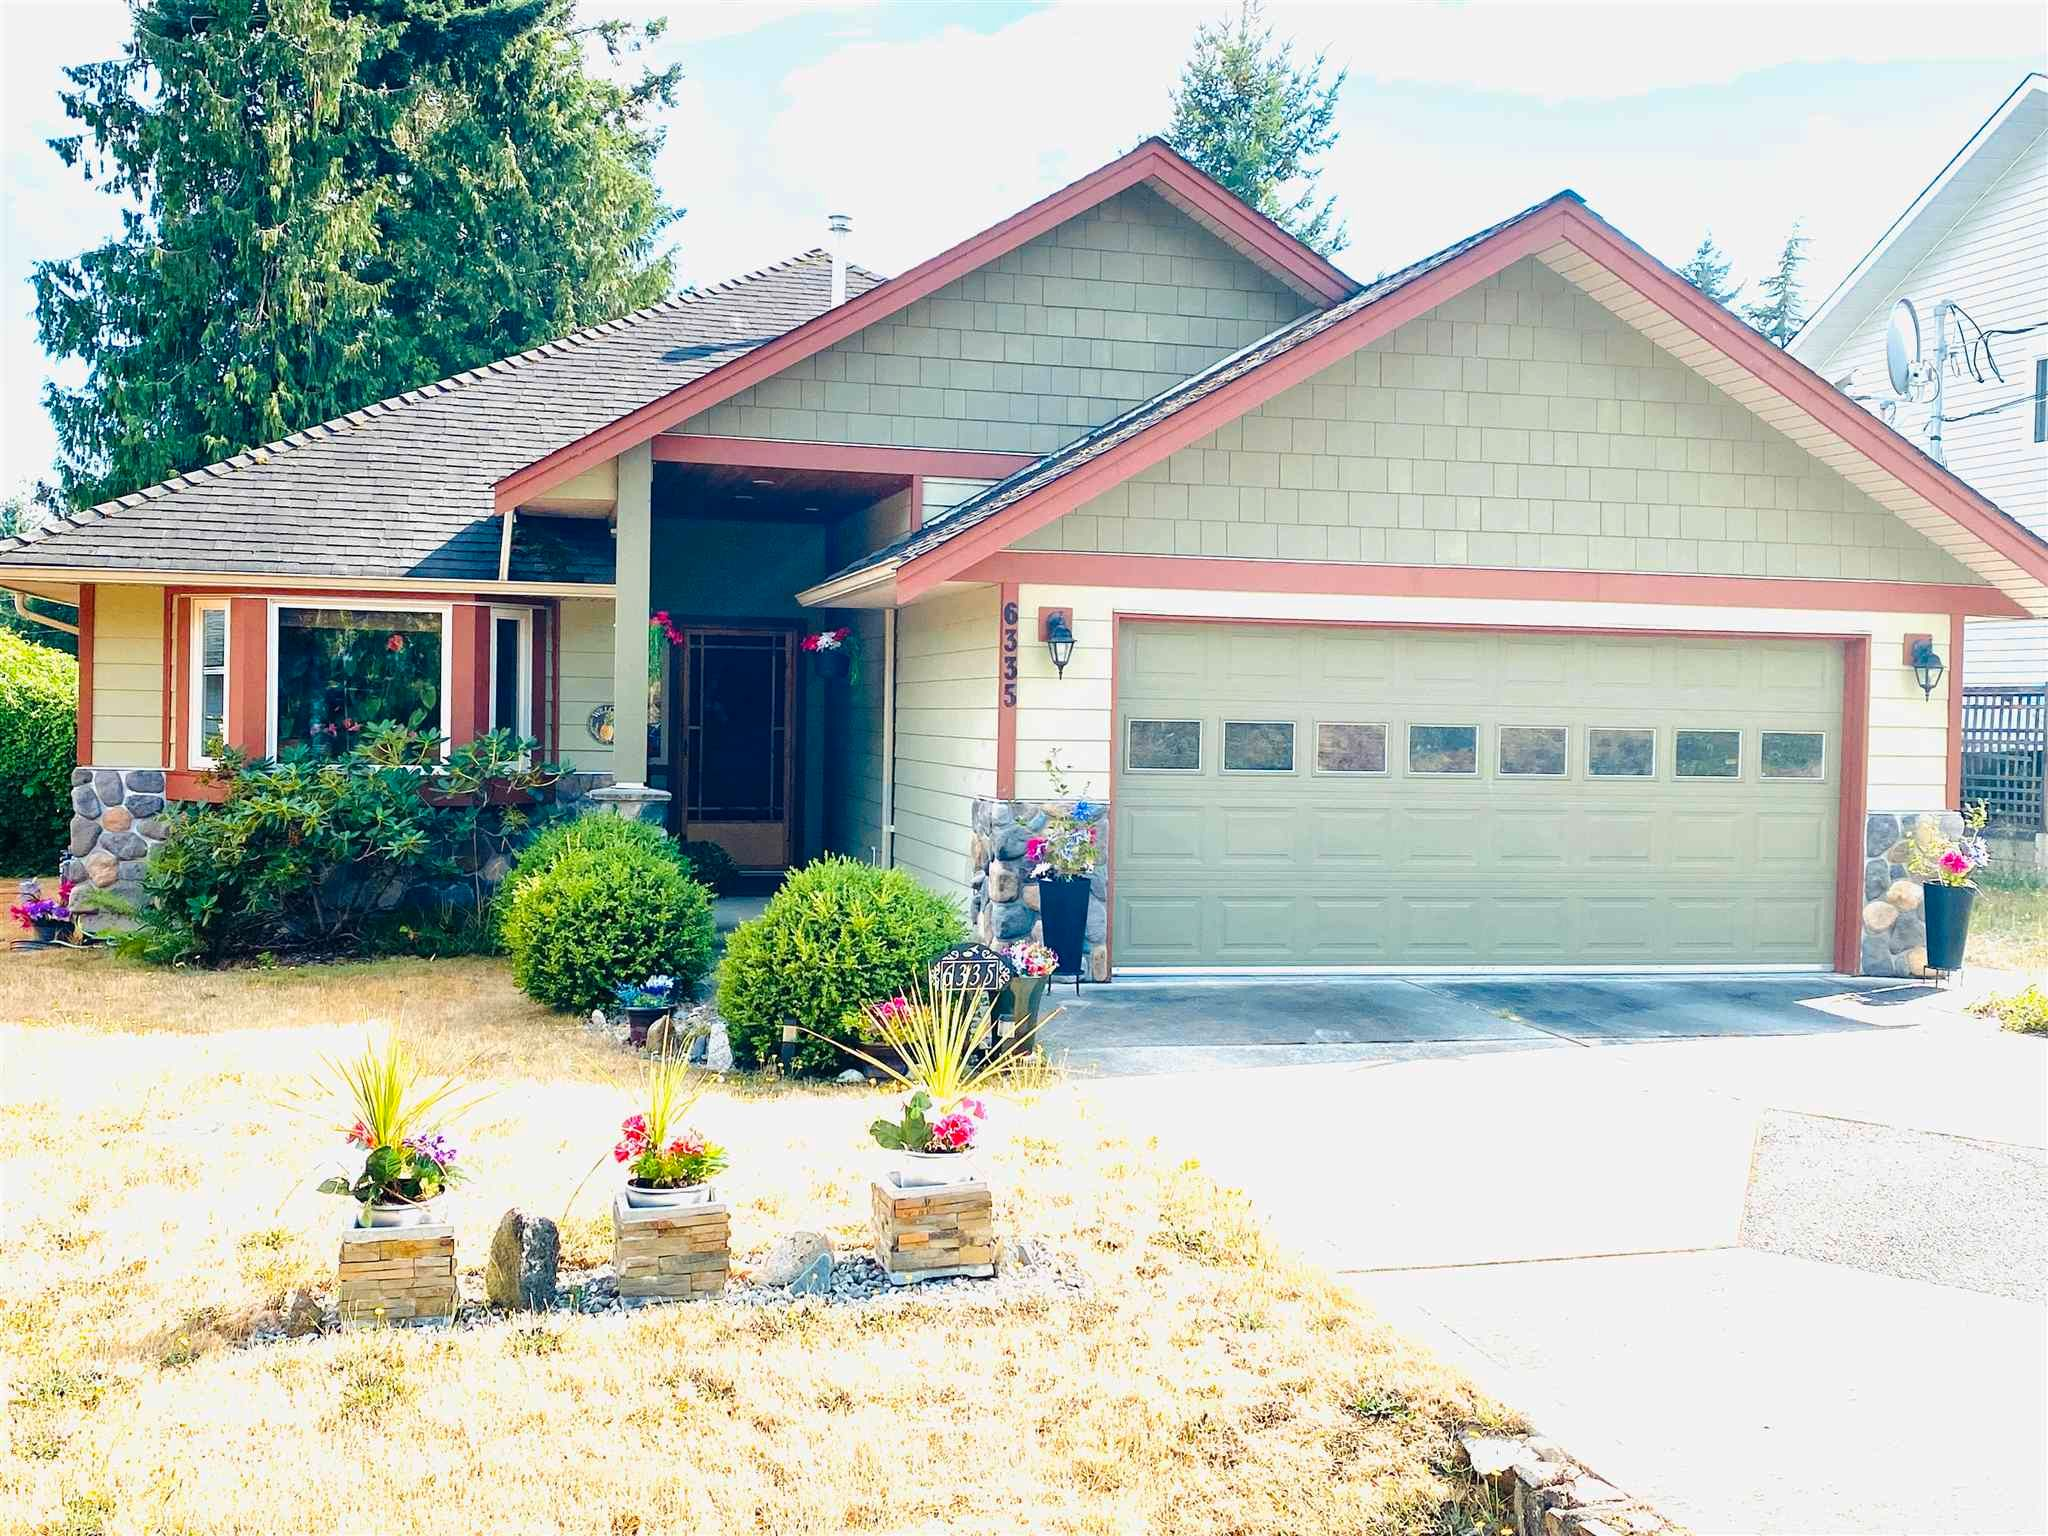 Main Photo: 6335 PICADILLY Place in Sechelt: Sechelt District House for sale (Sunshine Coast)  : MLS®# R2608131